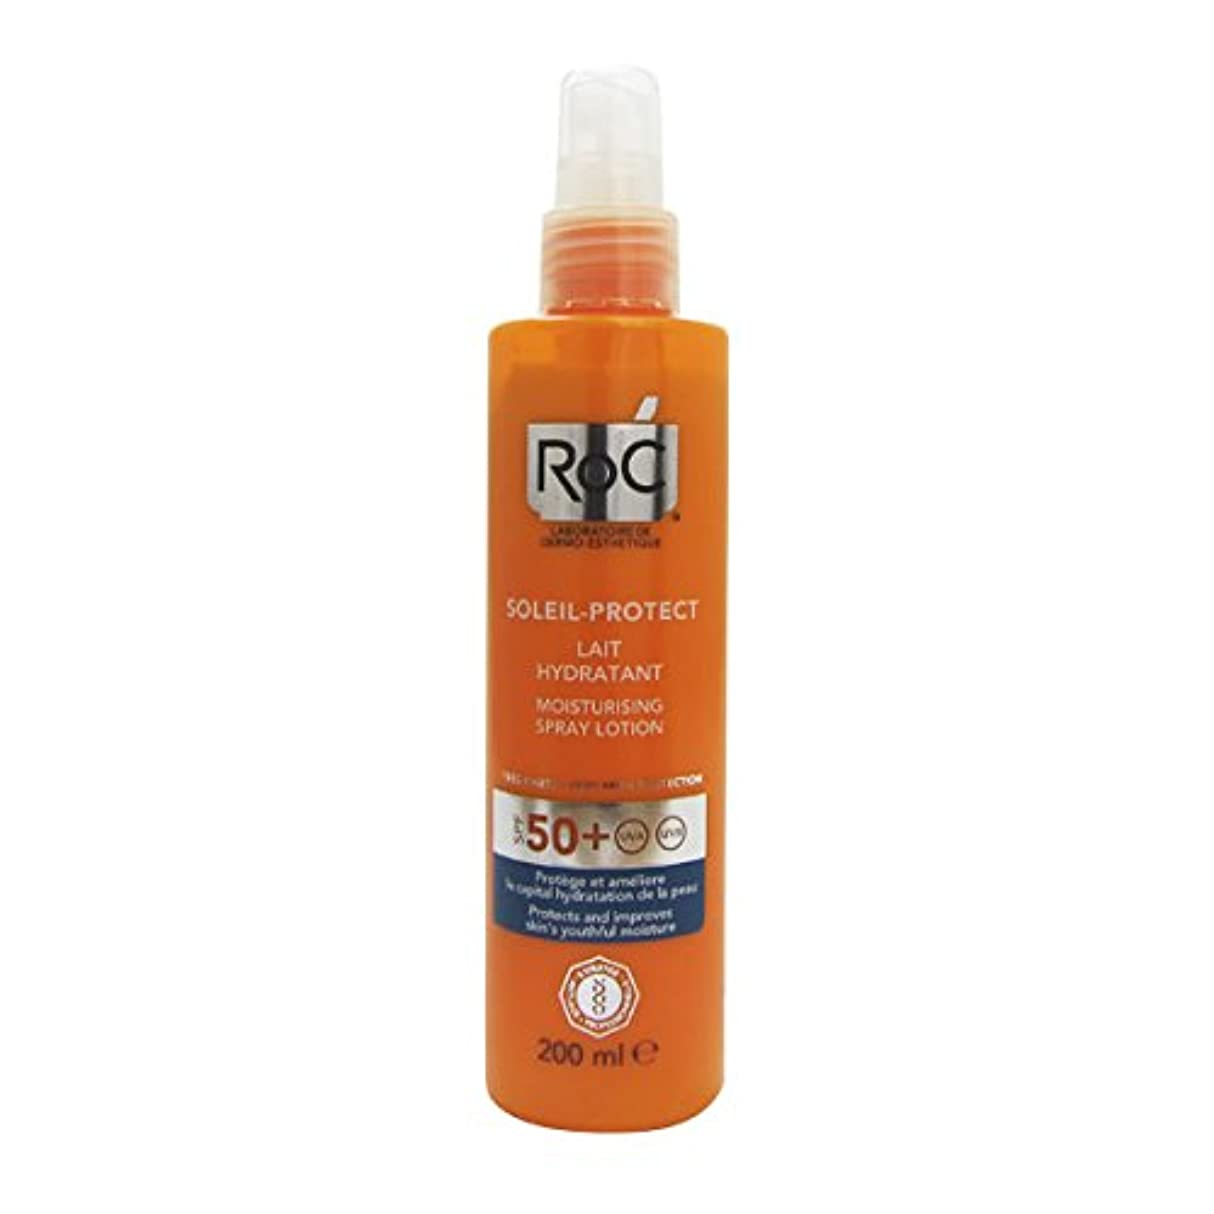 介入するクルー先祖Roc Soleil Protect Hydrating Fluid Spf30 200ml [並行輸入品]